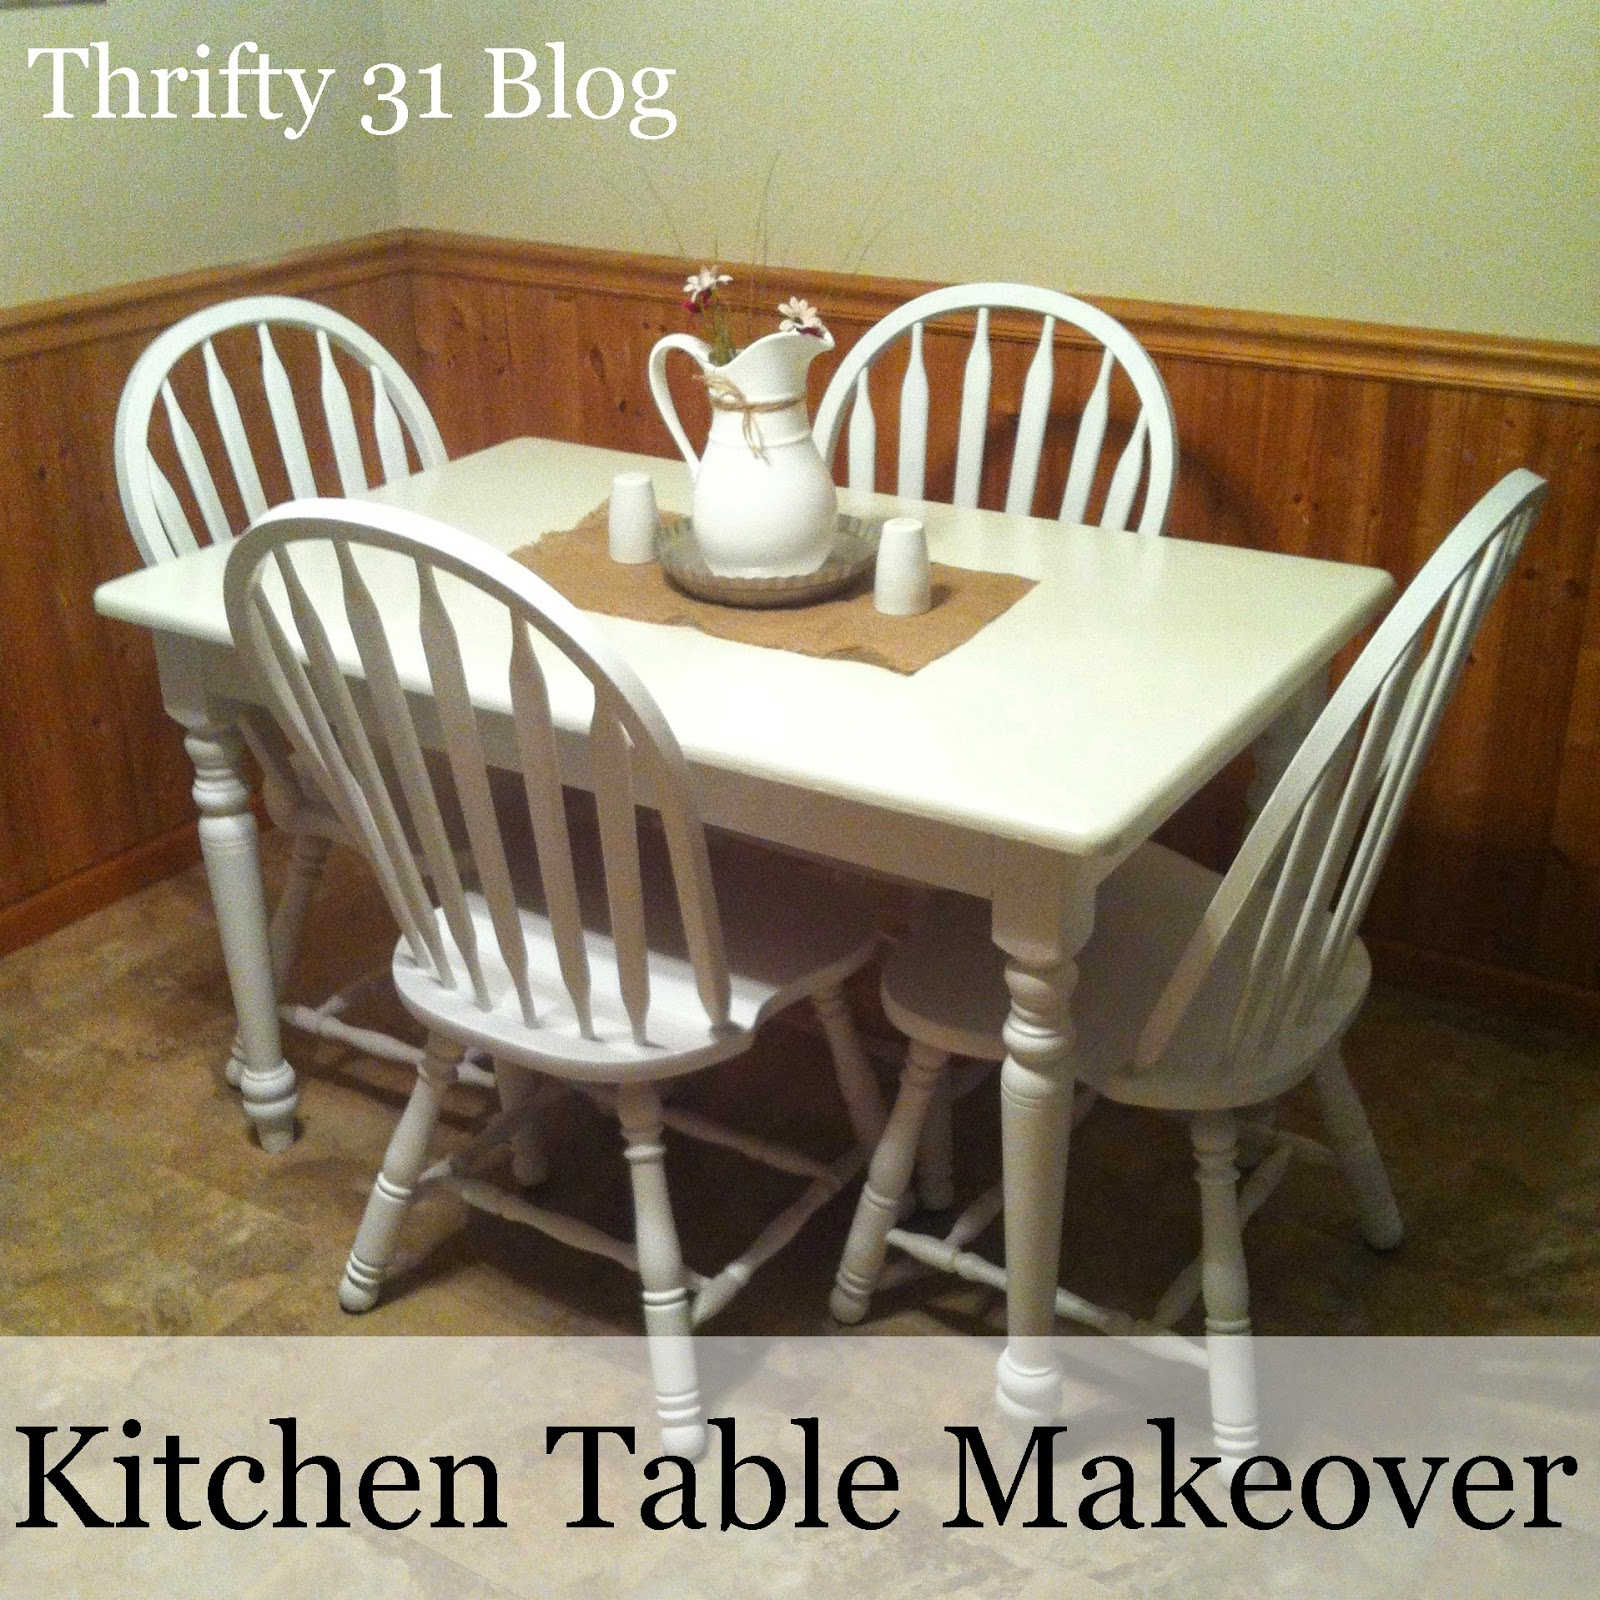 Thrifty 31 Blog: Kitchen Table Makeover & Some Helpful Tips